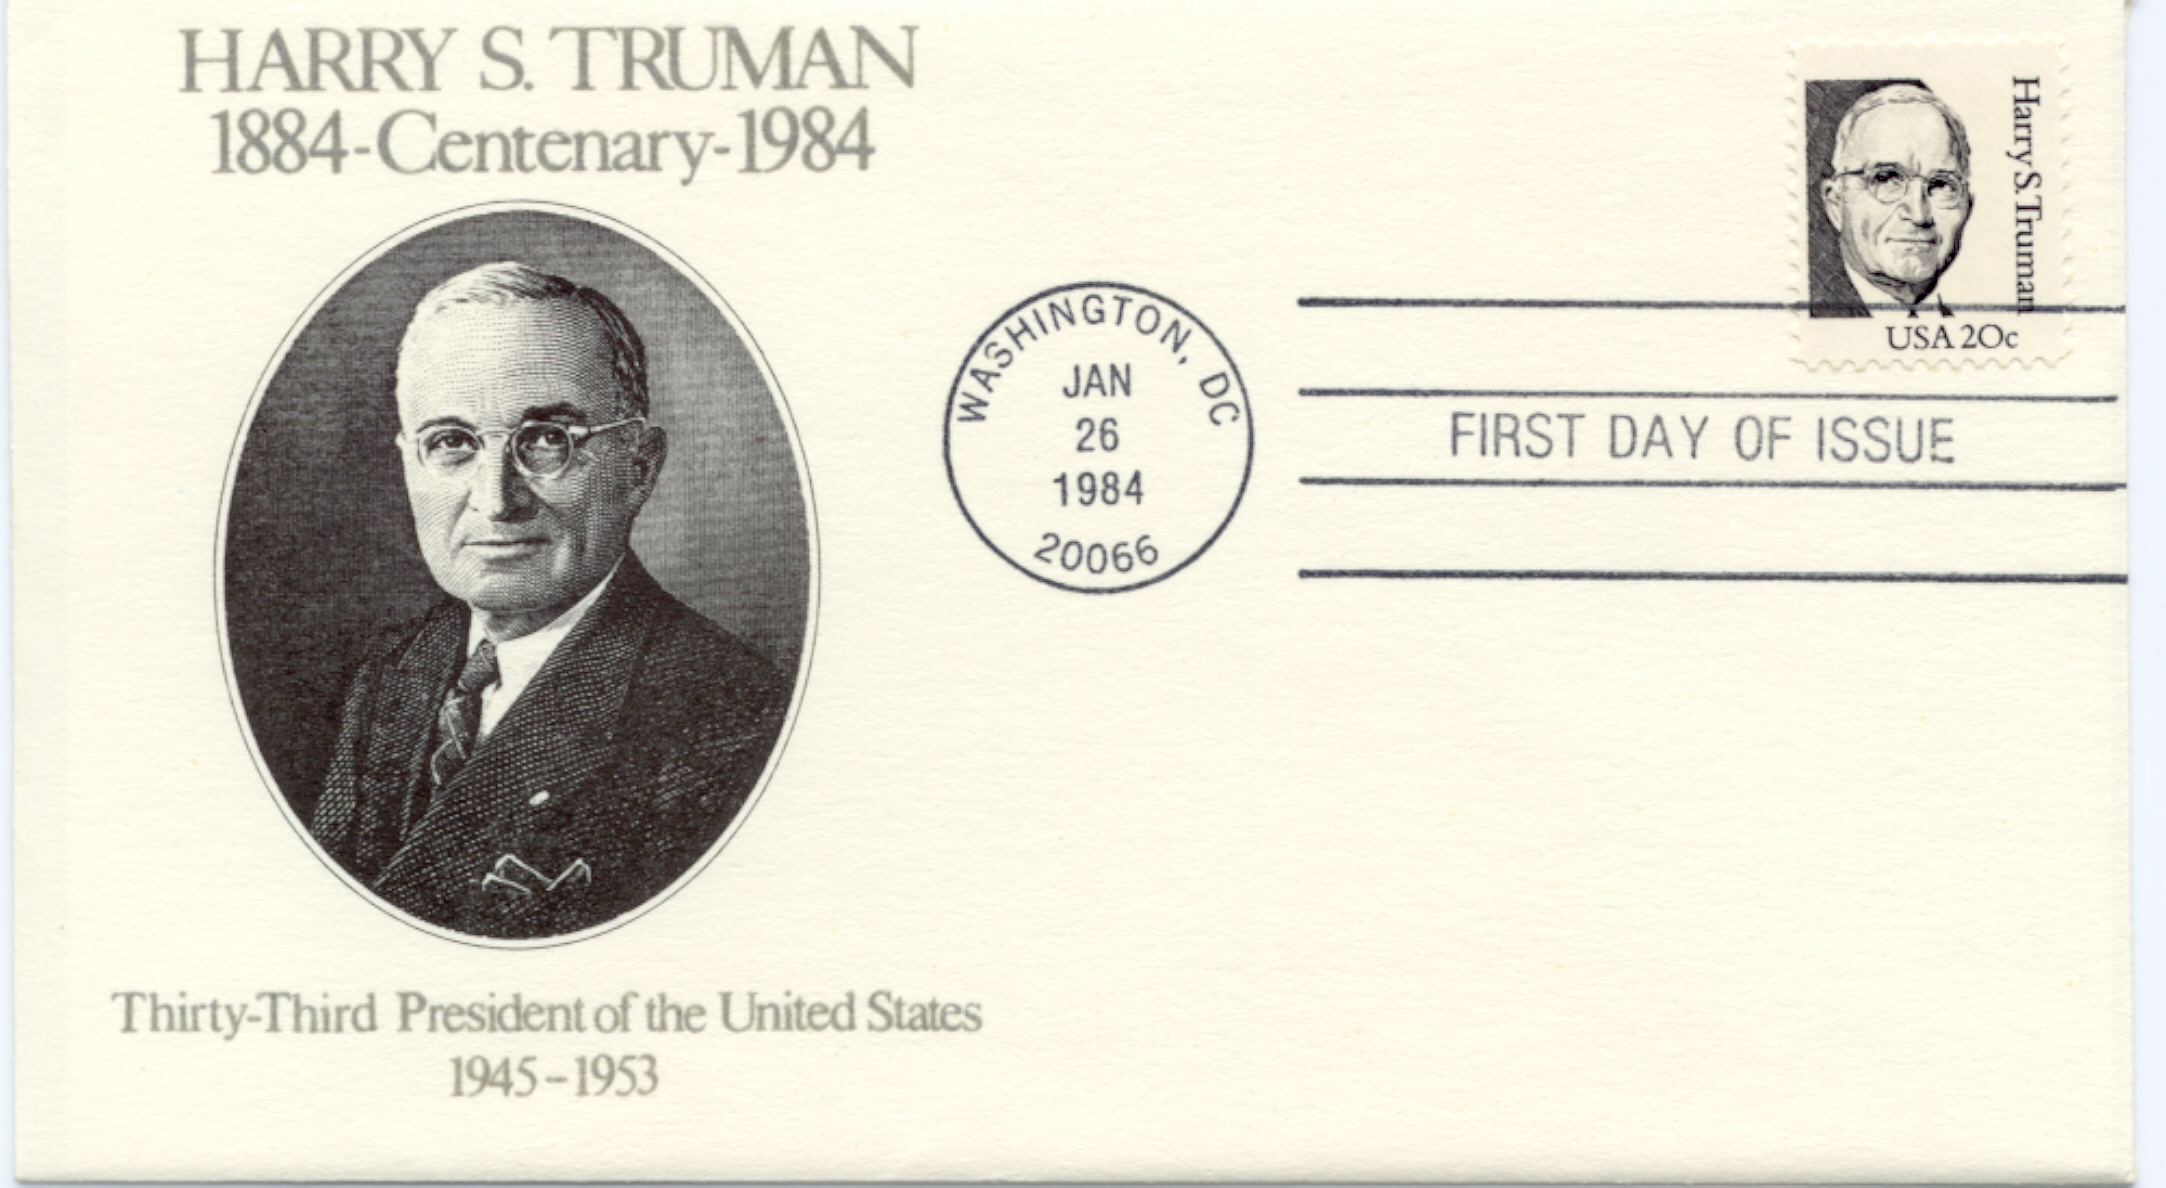 HST Definitive FDC #21